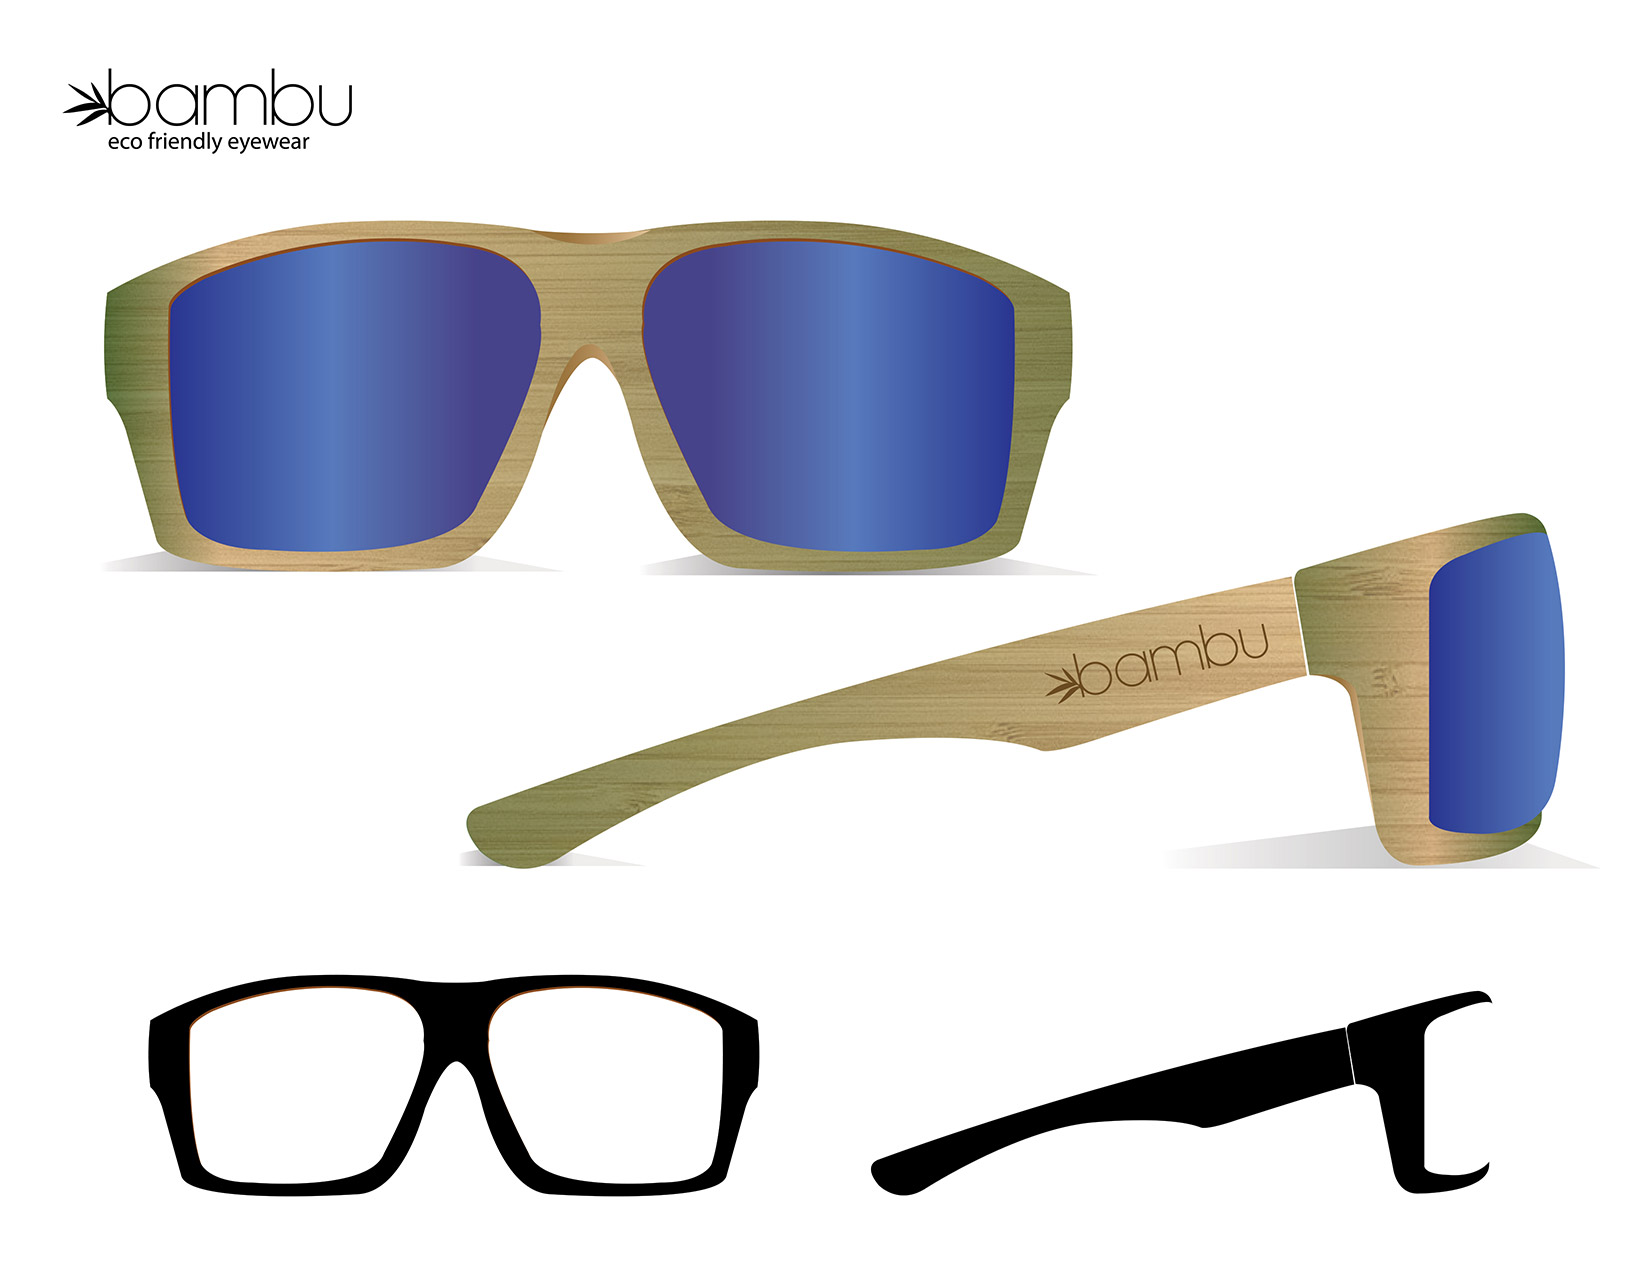 The Youngblood style by Bambu Glasses